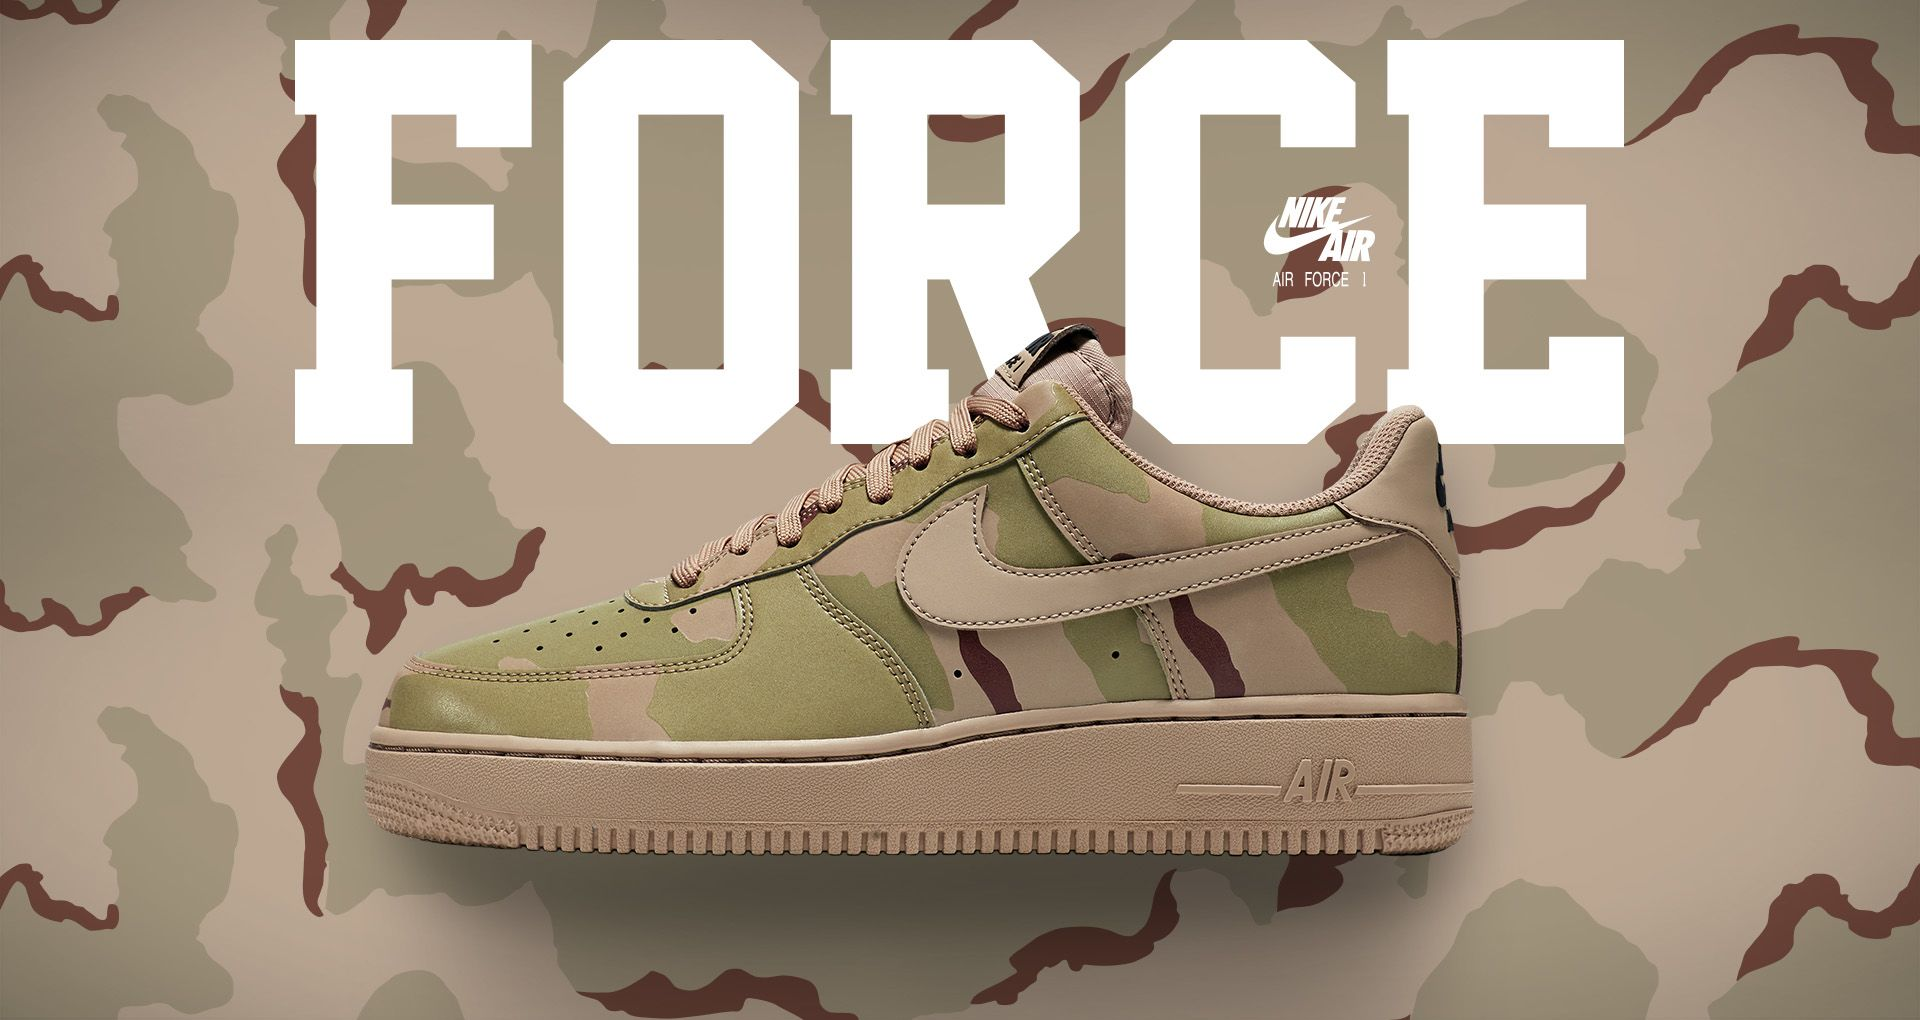 07 Release Force Reflective' 1 Air Nike Camo 'desert Date Low OkNnwX80P